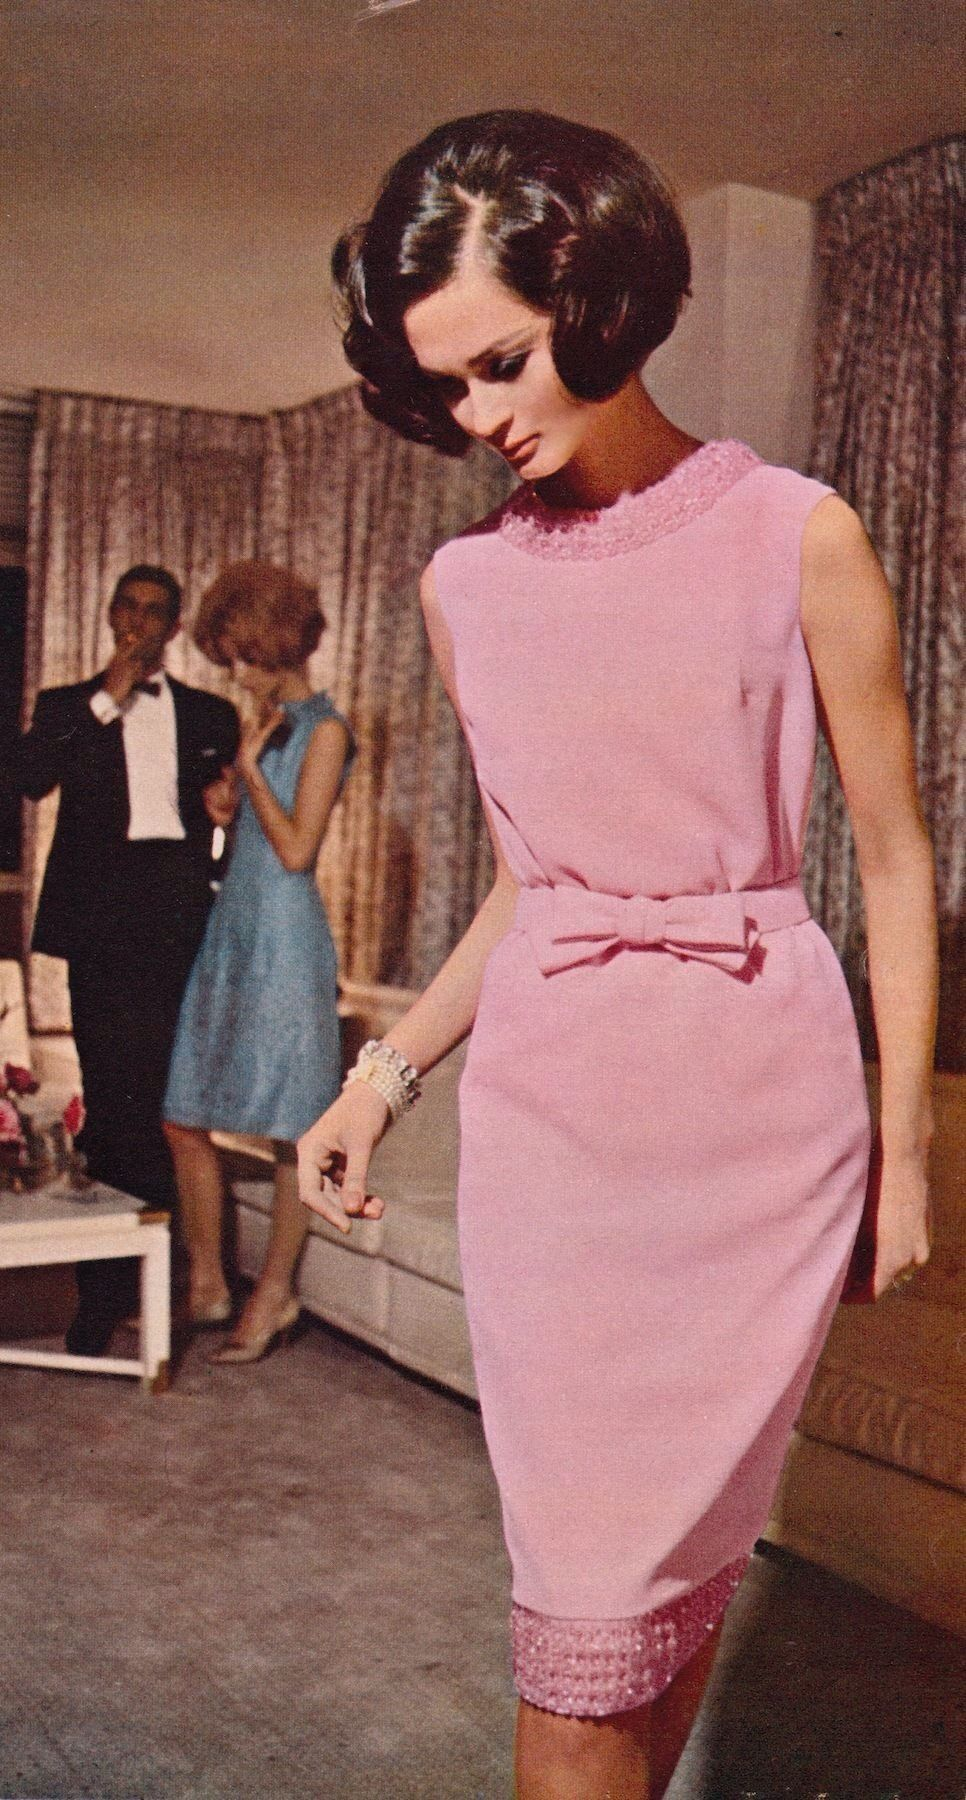 1965 Cocktail Party Fashion 1000 Cocktail Party Attire Cocktail Party Fashion Cocktail Dress Party [ 1800 x 966 Pixel ]